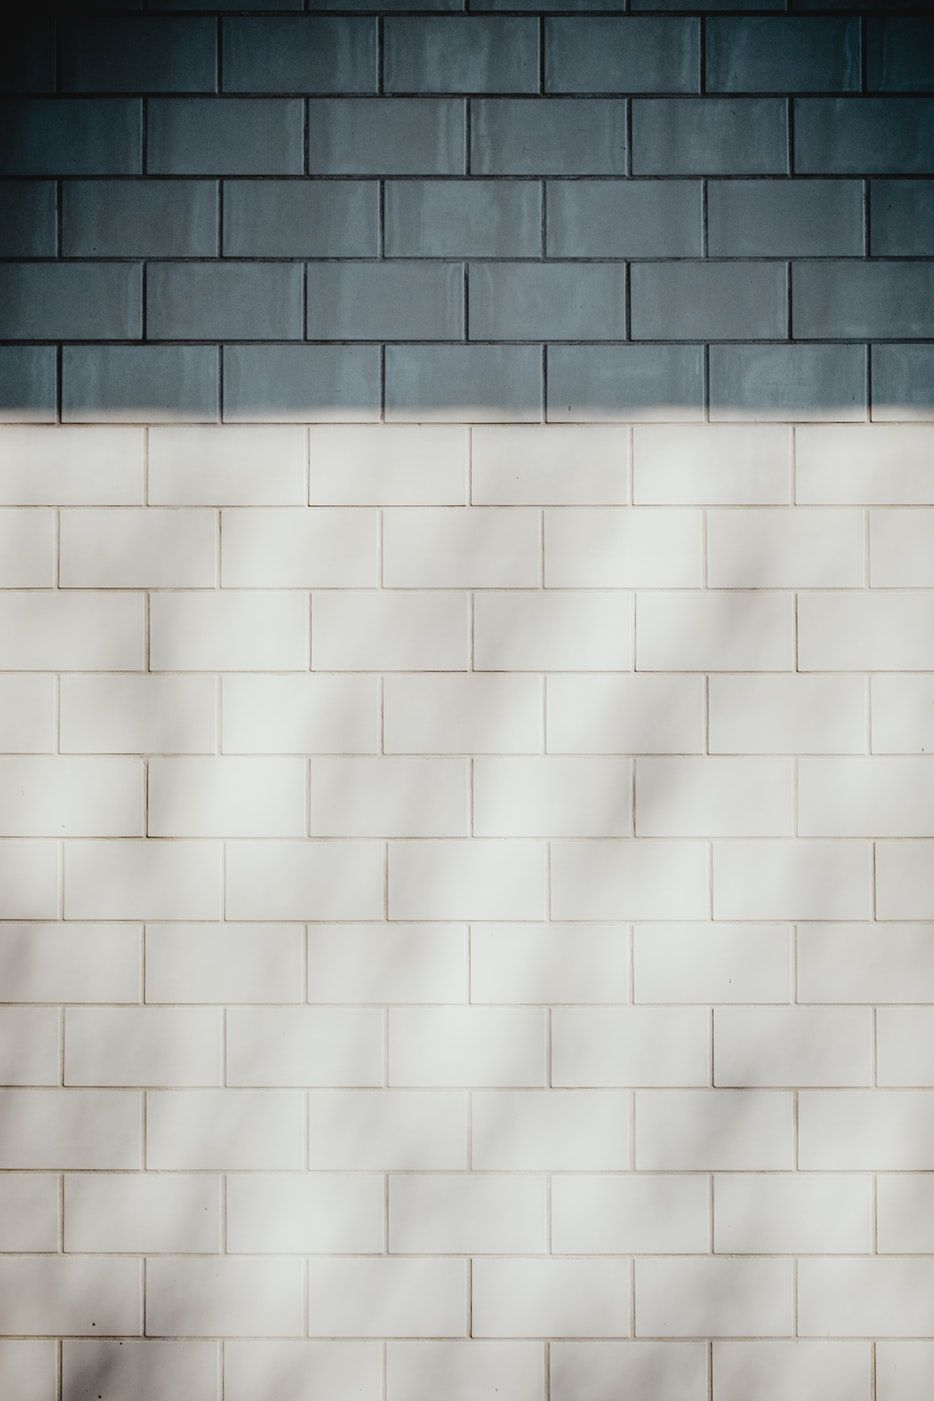 Wall Tile White And Texture Hd Photo By Bernard Hermant Bernardhermant On Unsplash Modern Kitchen Design Modern Kitchen Kitchen Design